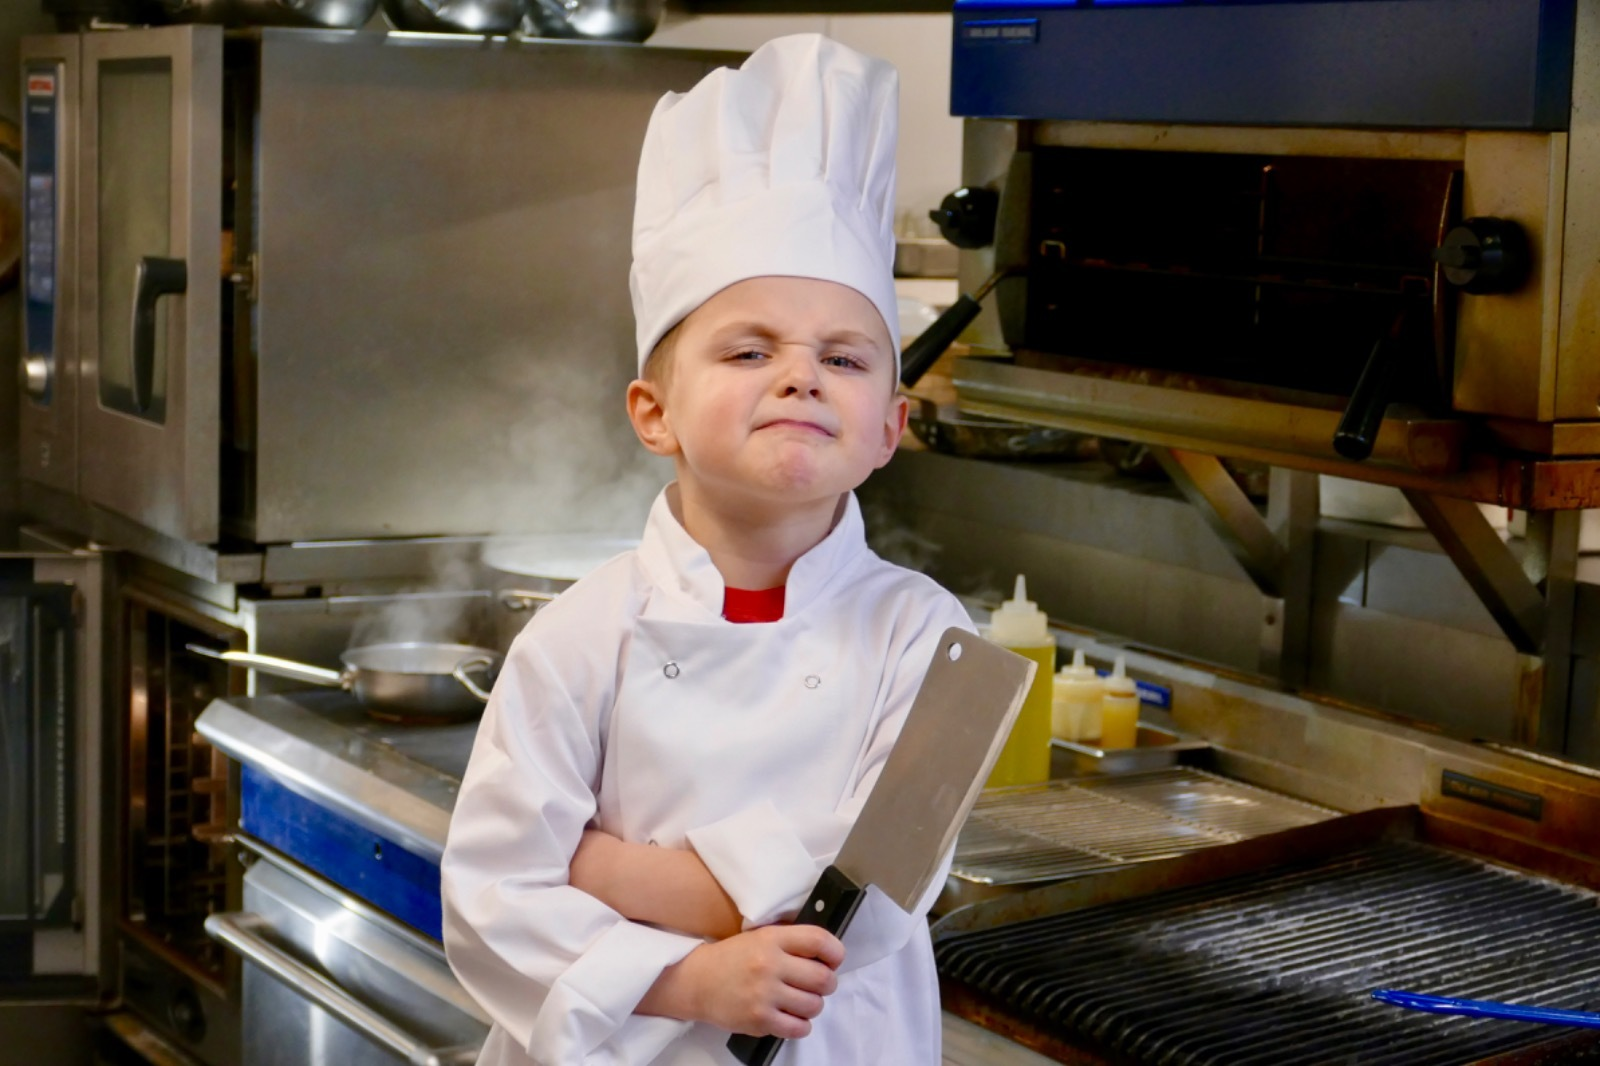 Five-year-old puts top chefs through their paces developing kid's menu at Llangollen restaurant